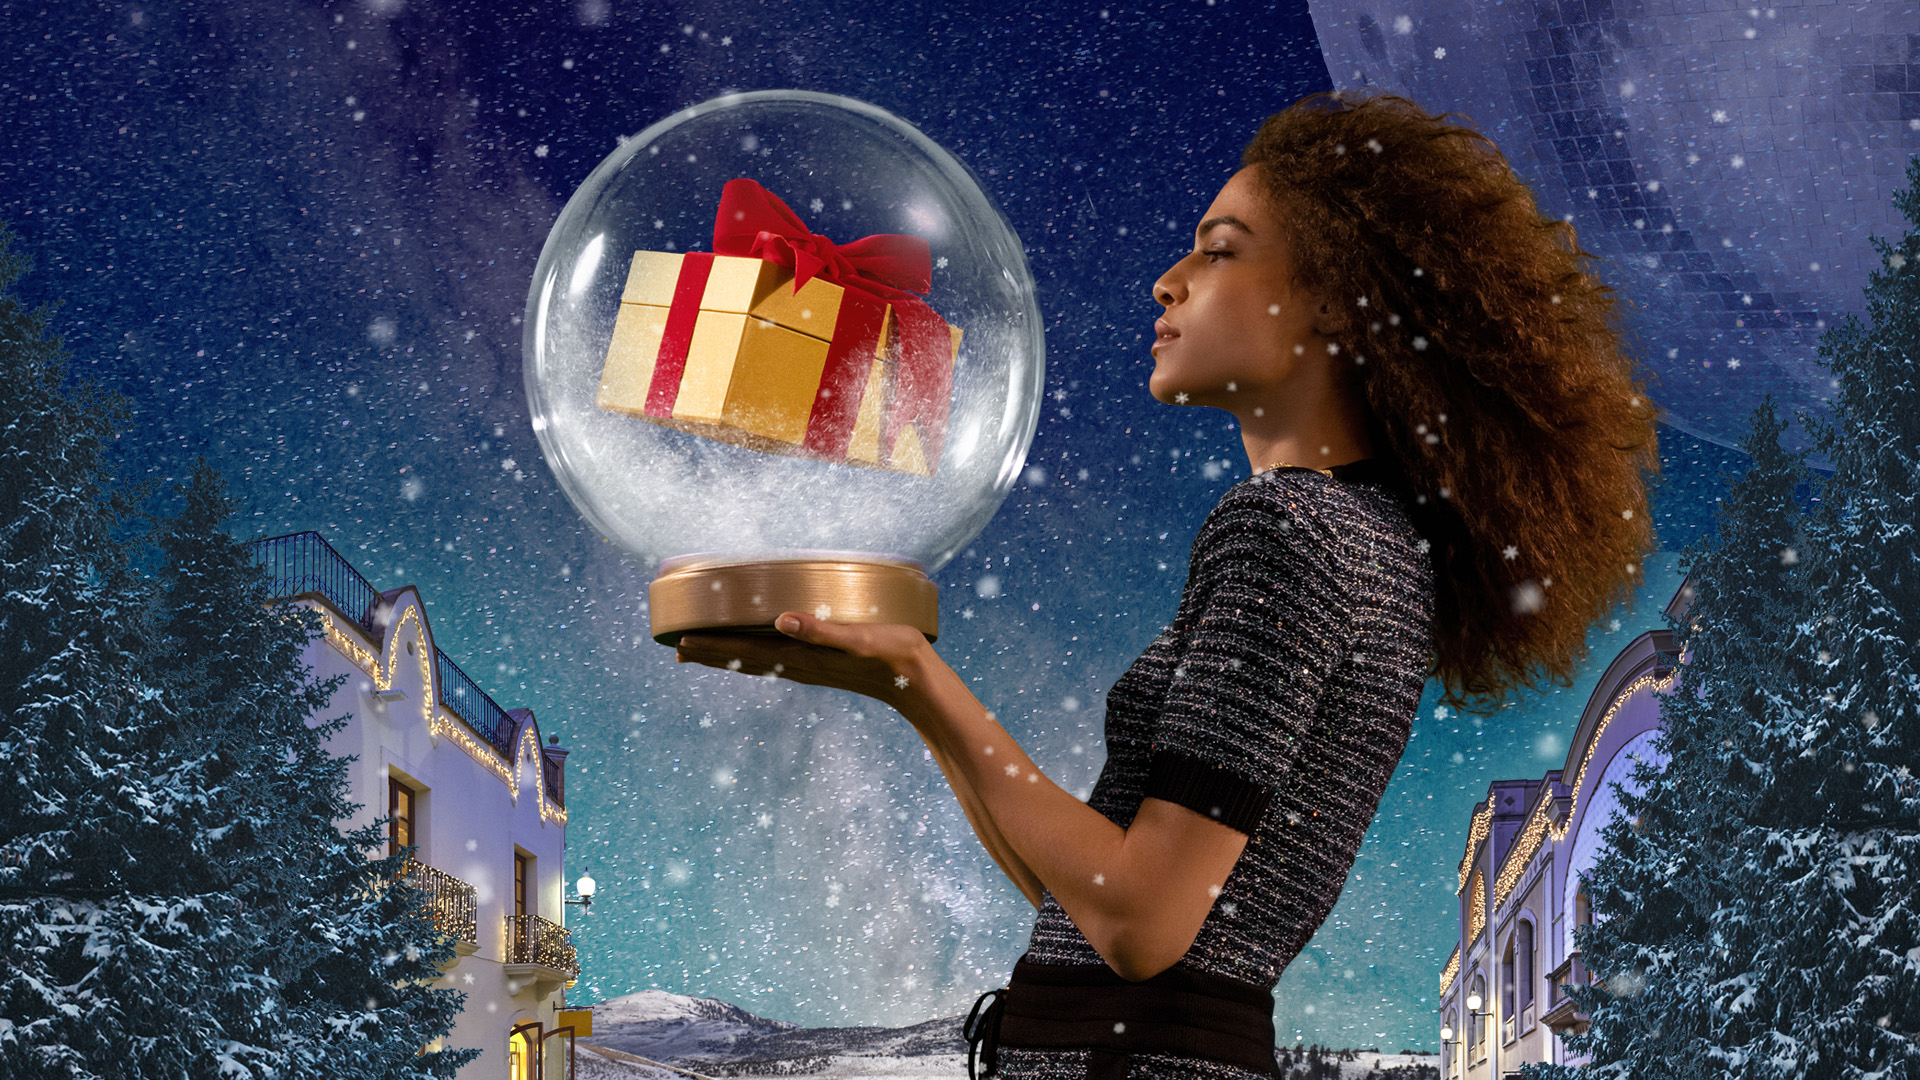 Woman with a snow ball with a present